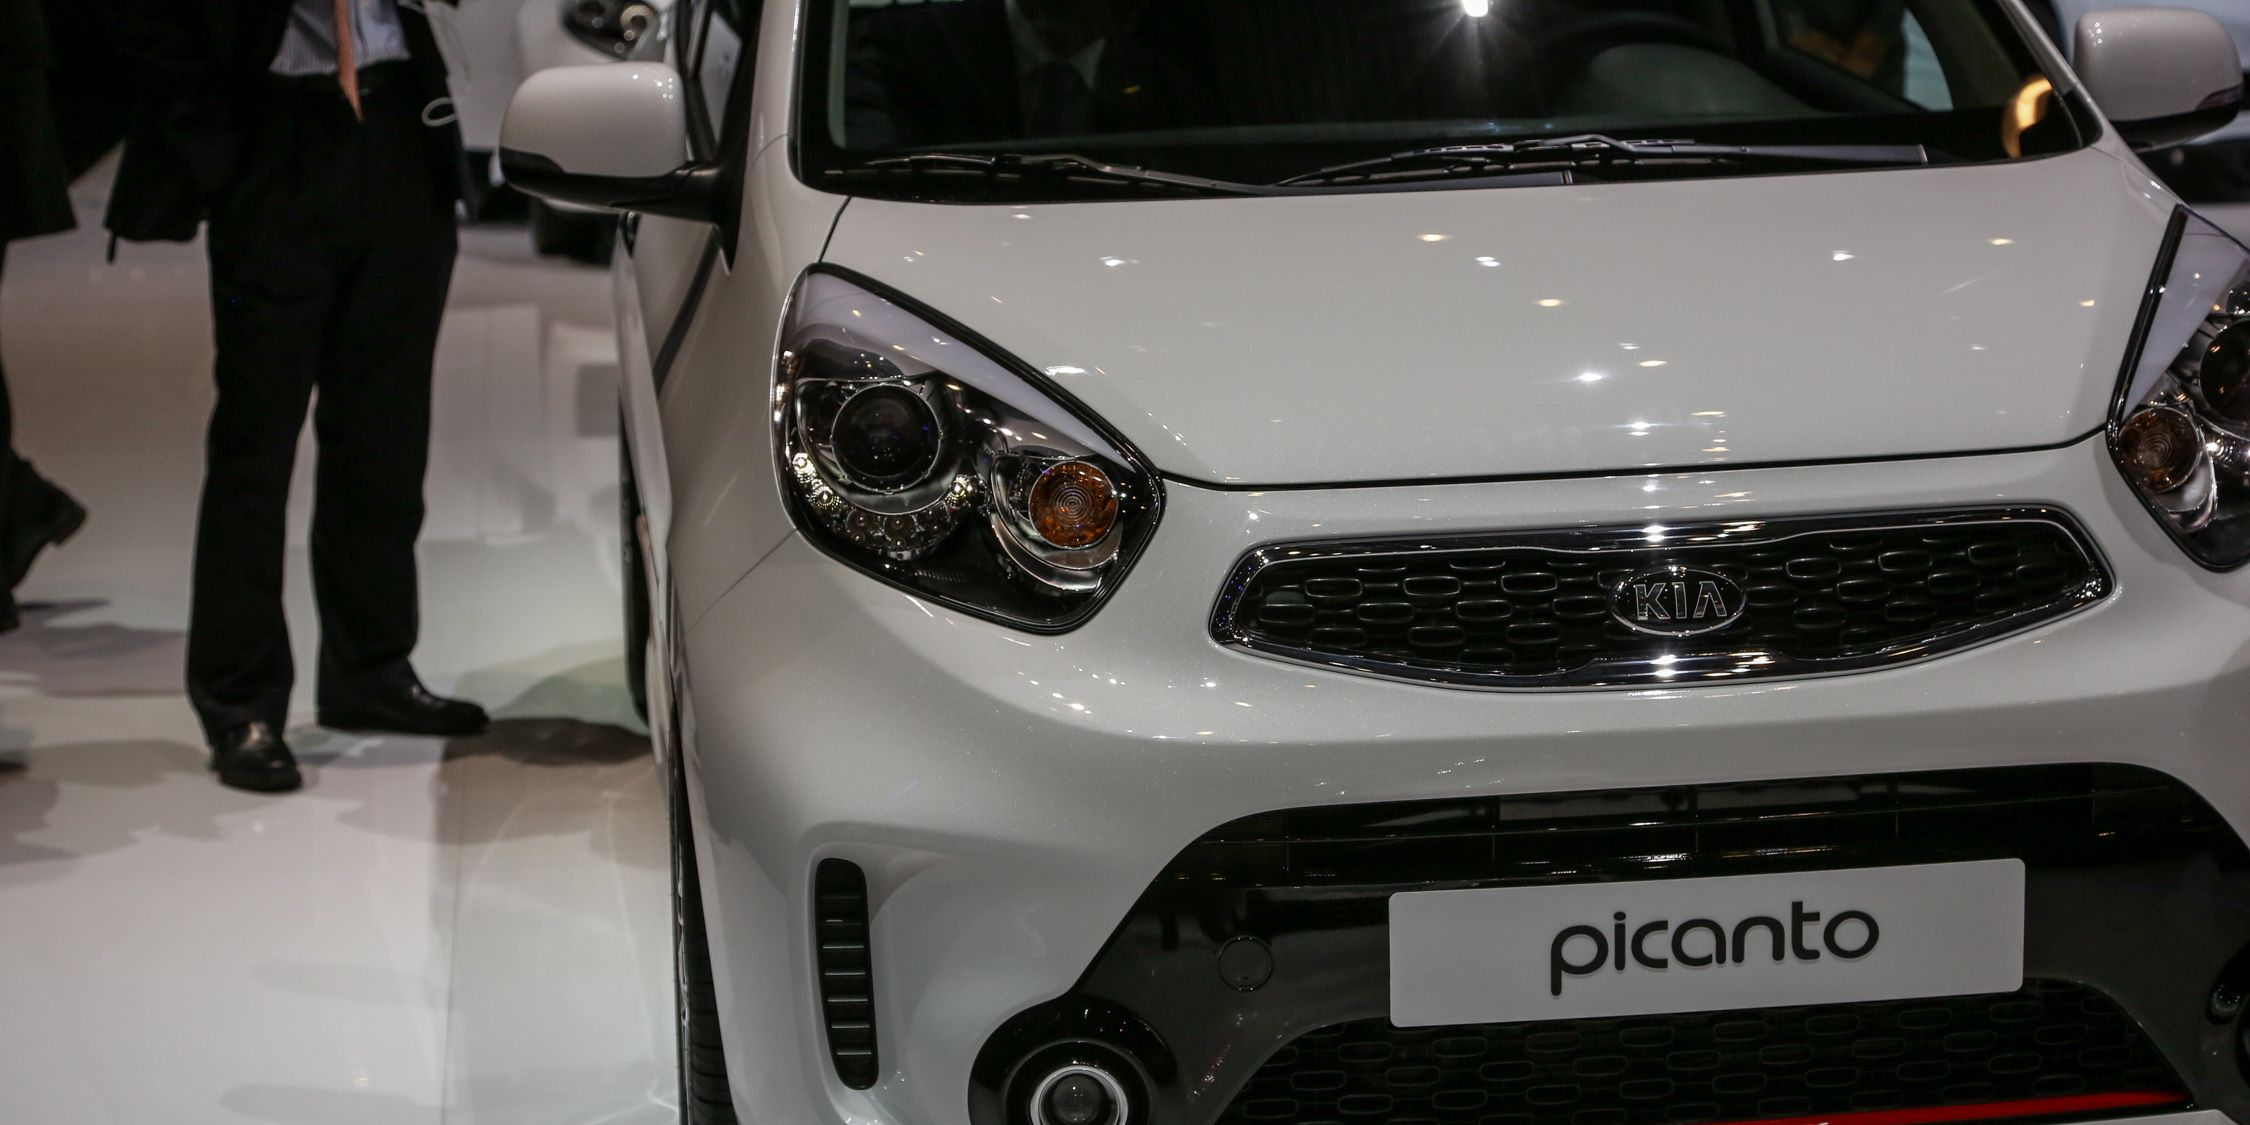 Kia-ping It Small: Kia Shows New Cee'd GT Line and Picanto